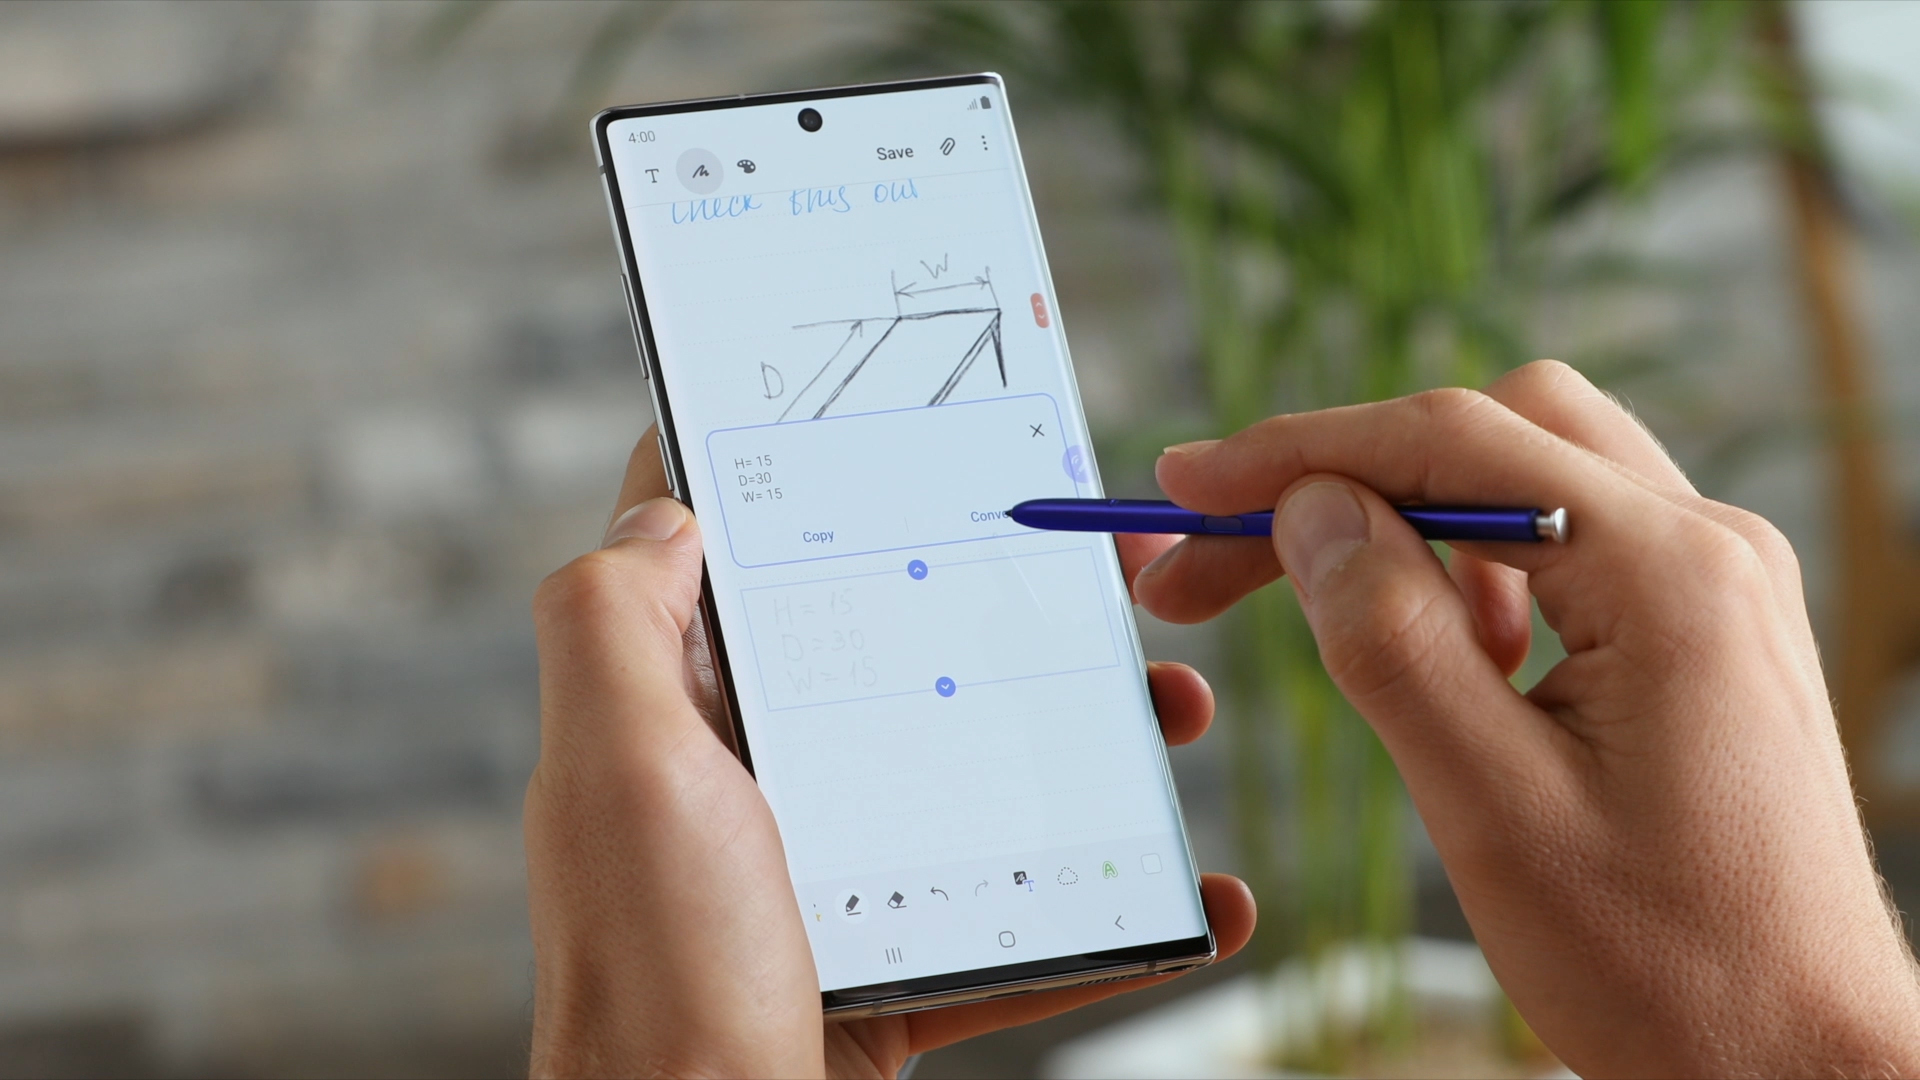 Samsung Galaxy Note 10 enhances software with Microsoft's aid